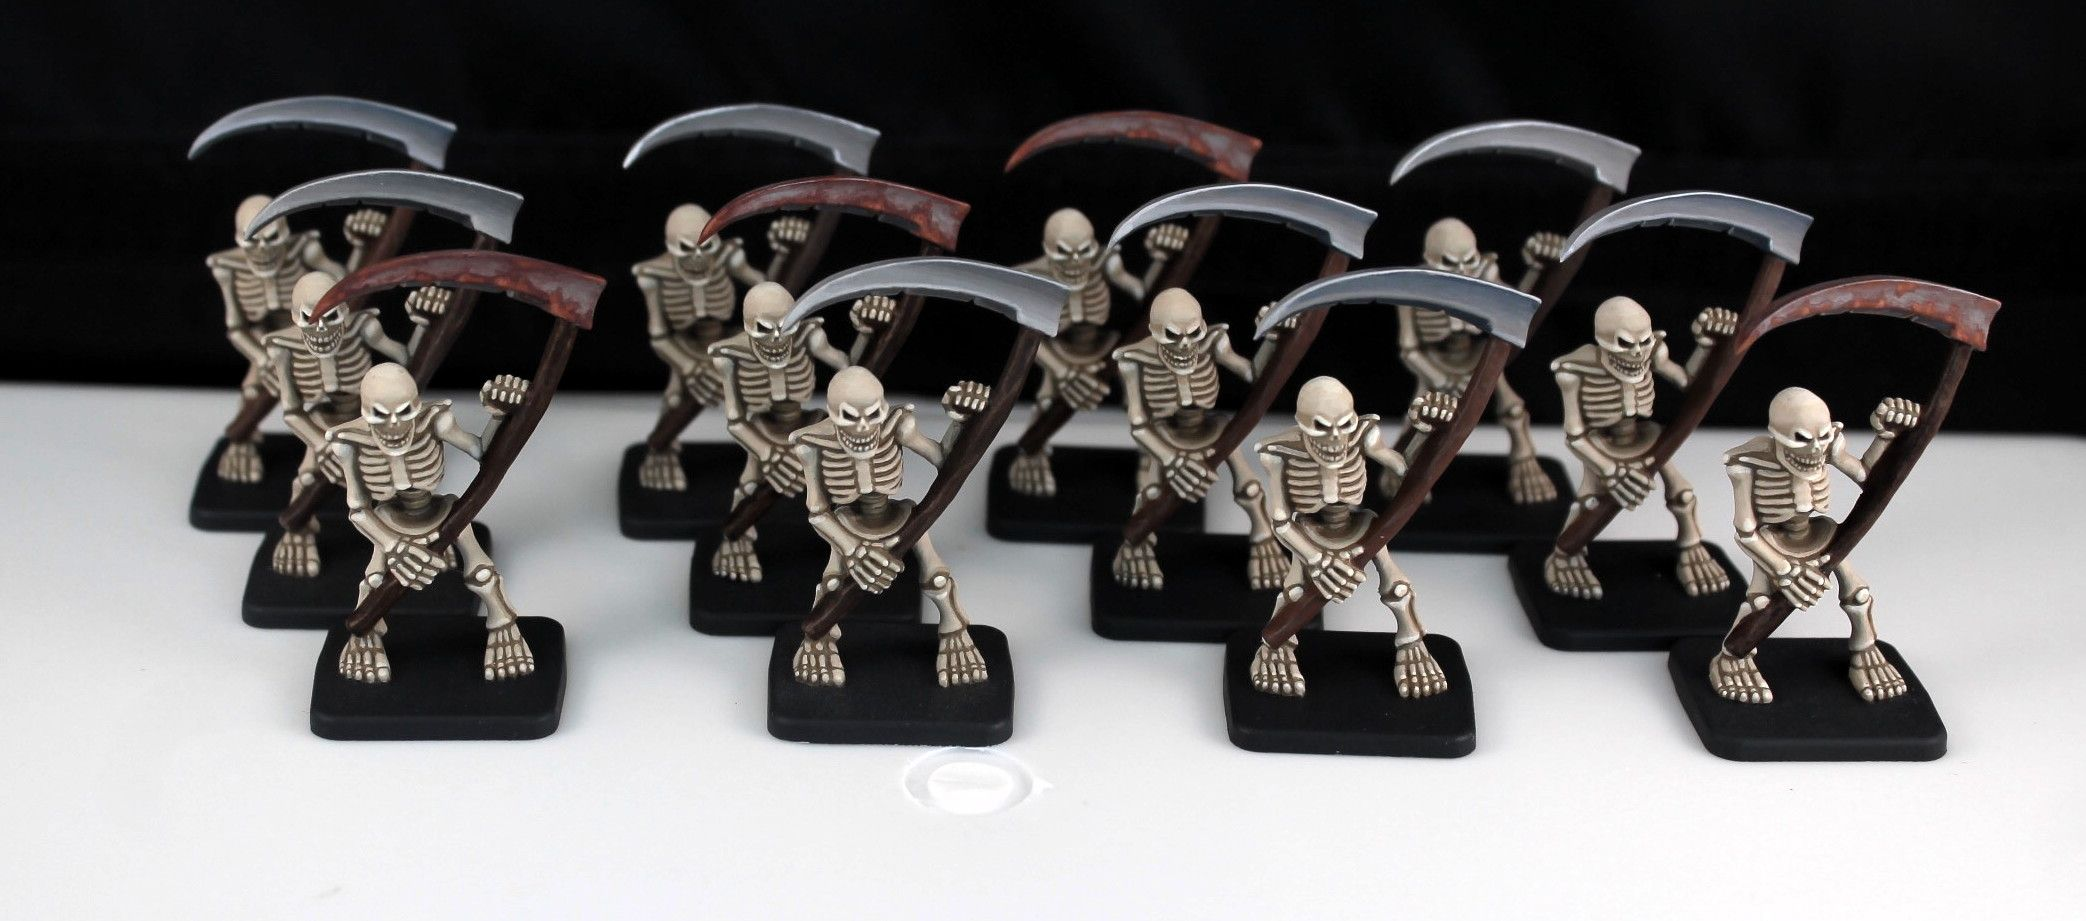 Pin by mero mero on Heroquest Miniatures, Game